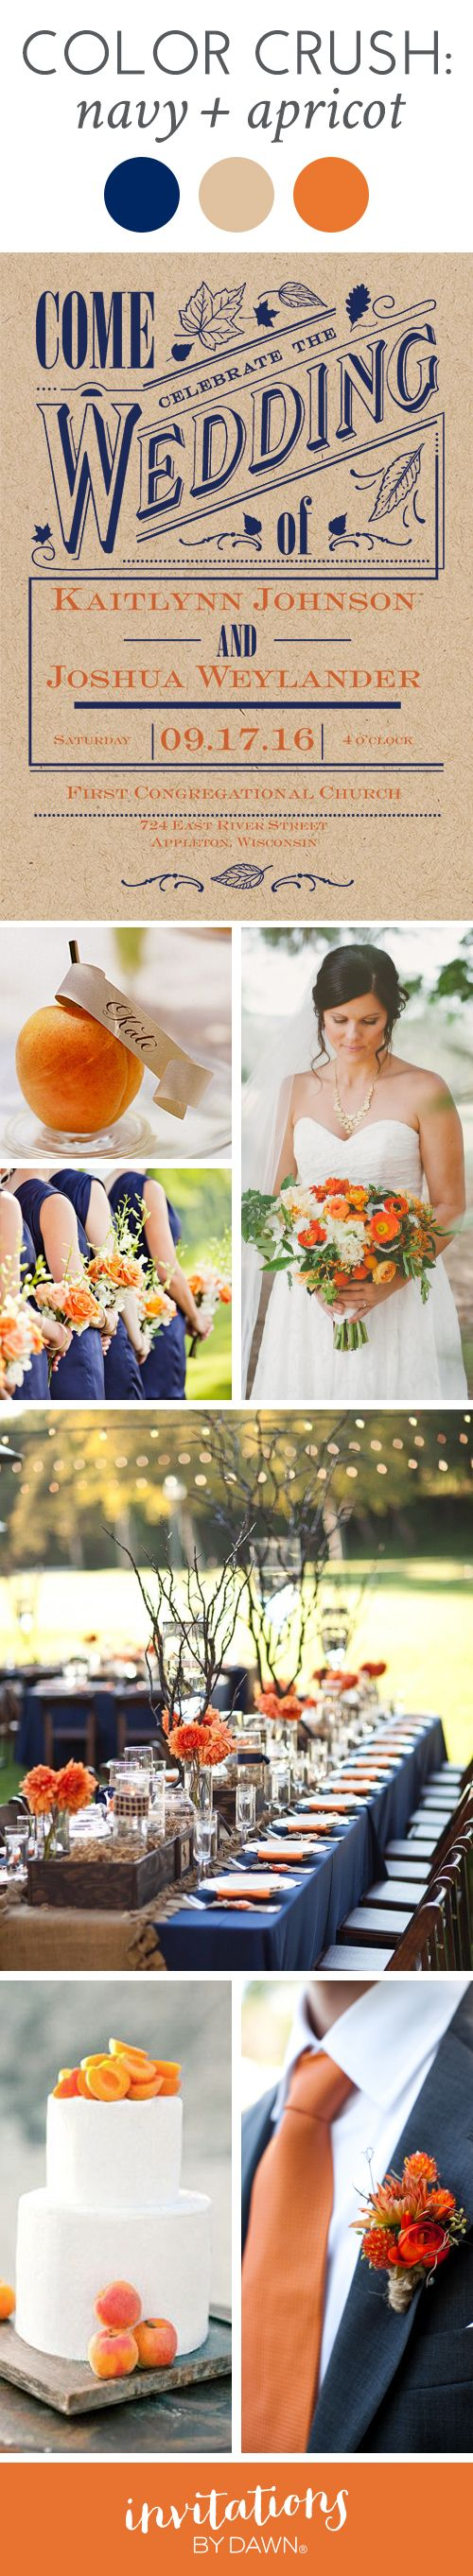 Wedding Color Crush: Navy & Apricot. An unexpected color combo for an autumn wedding #FallWedding